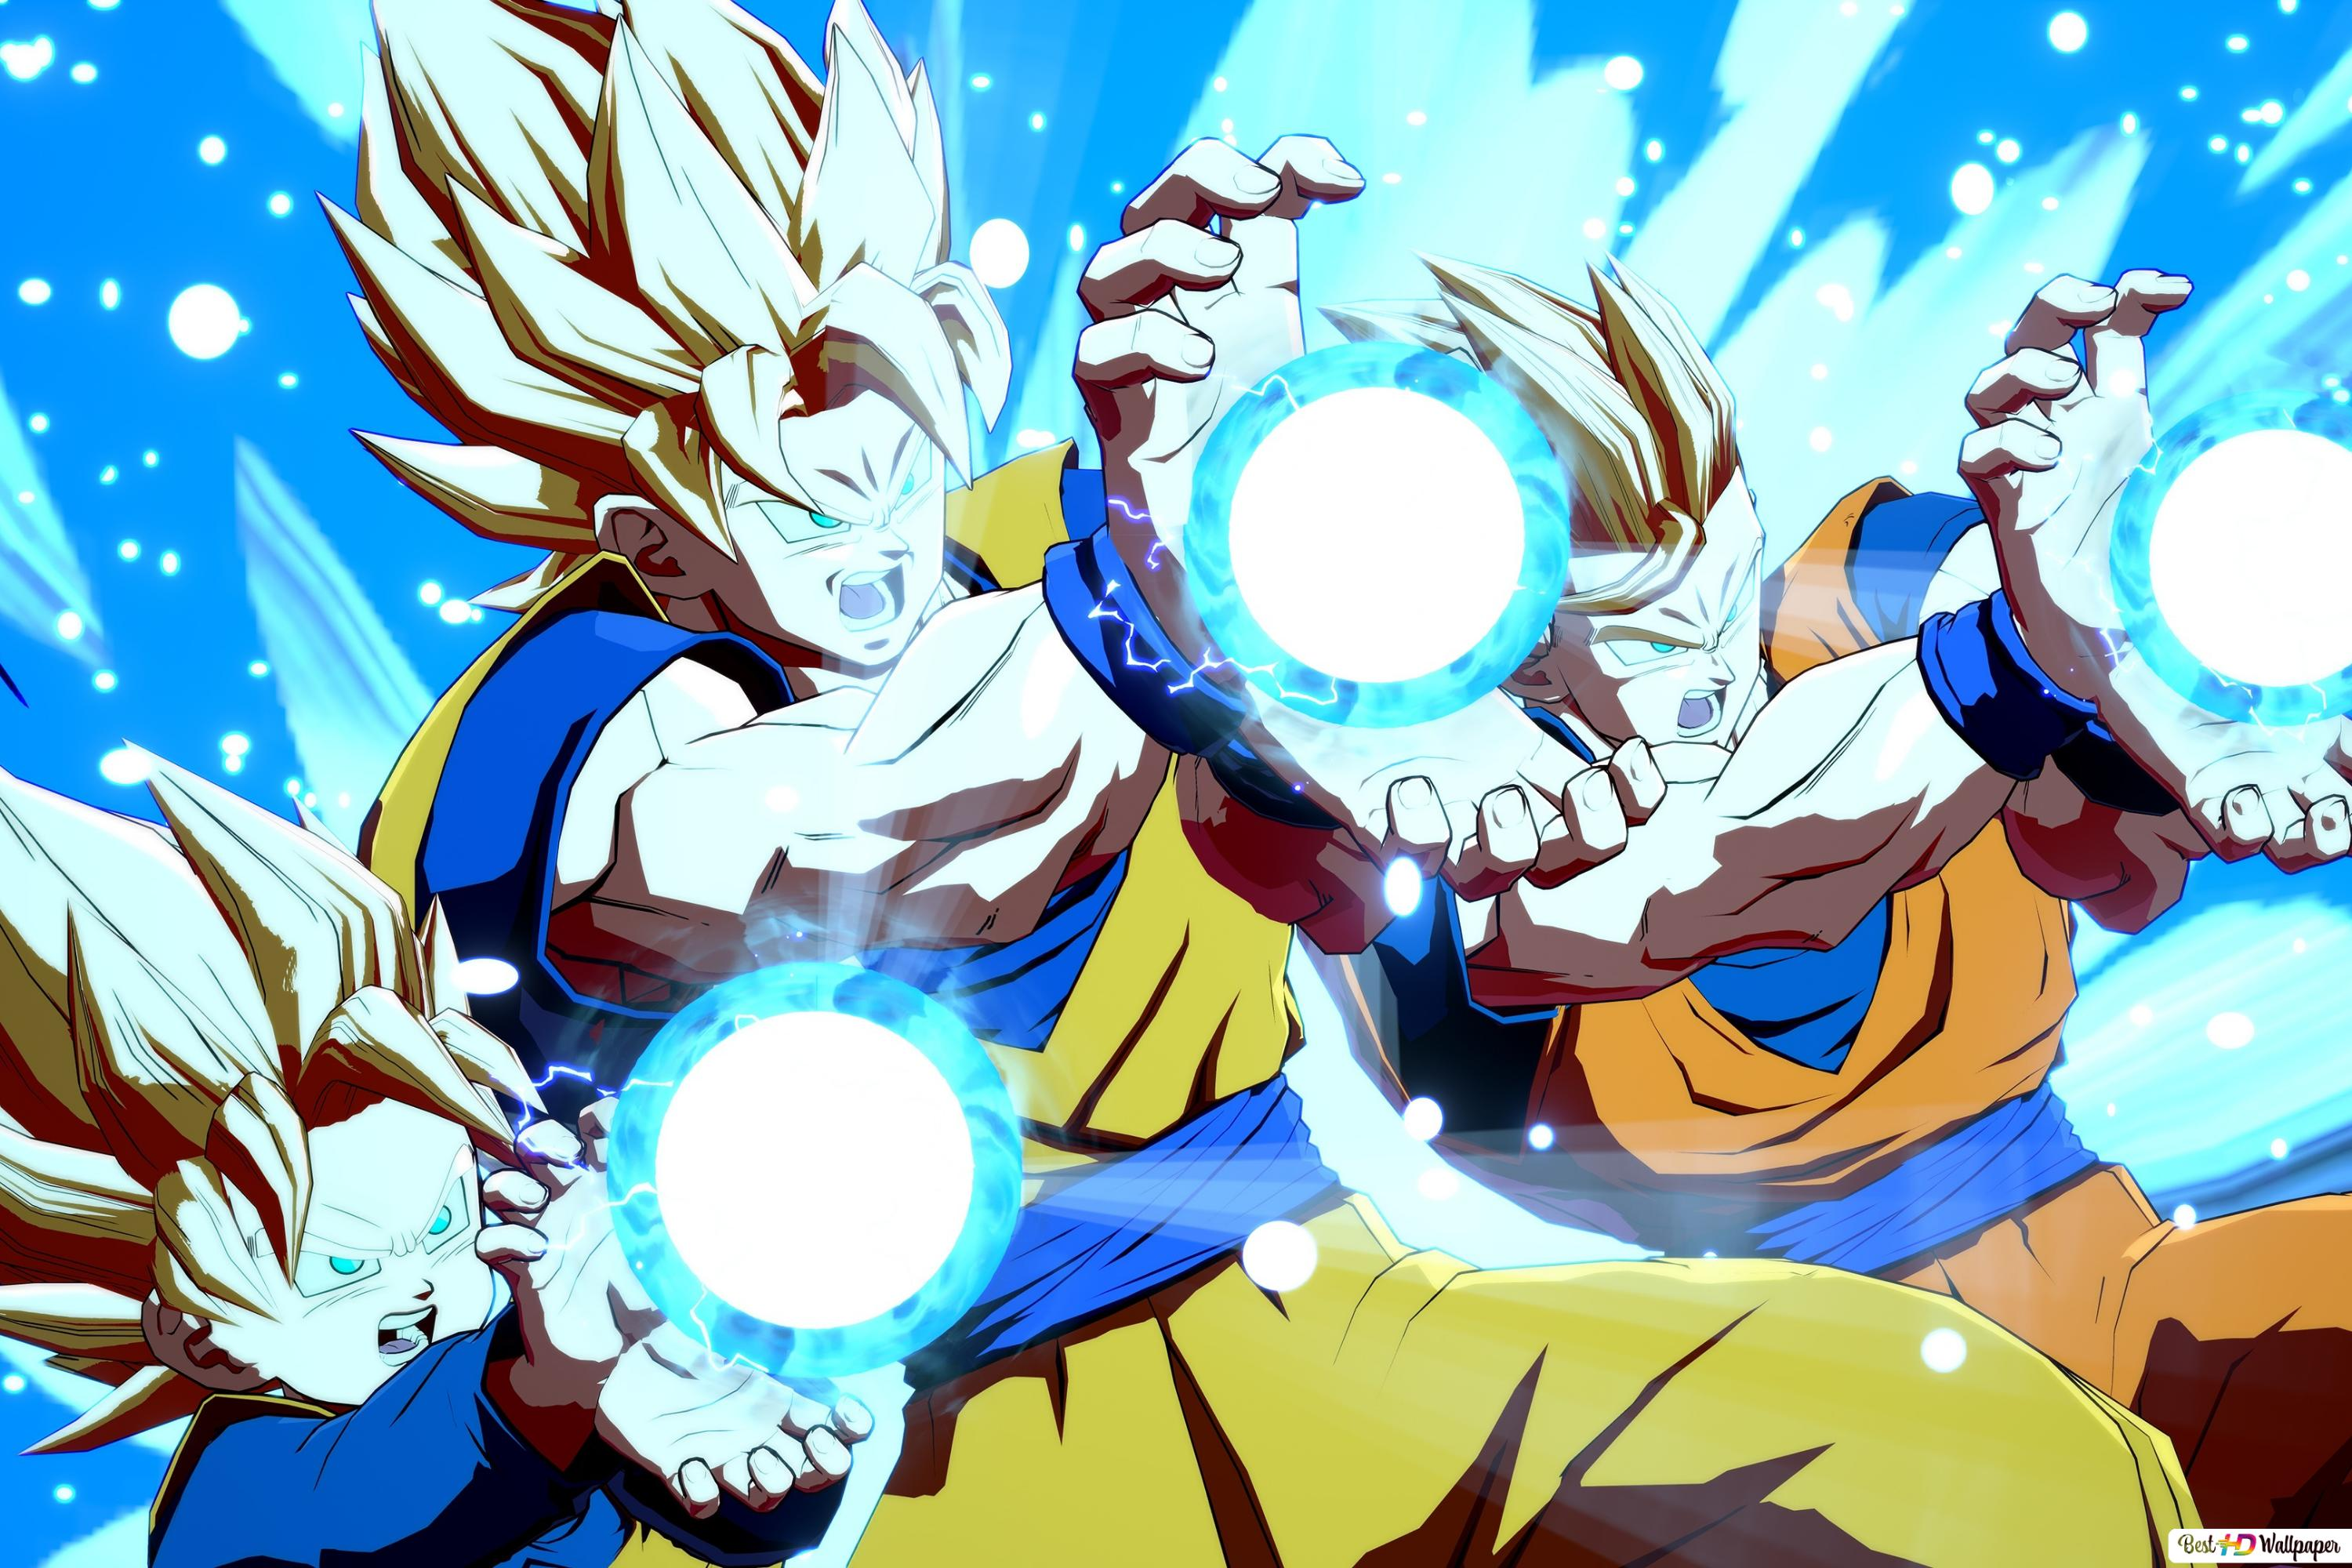 Dragon Ball Fighterz Goten Goku Gohan Kamehameha Hd Wallpaper